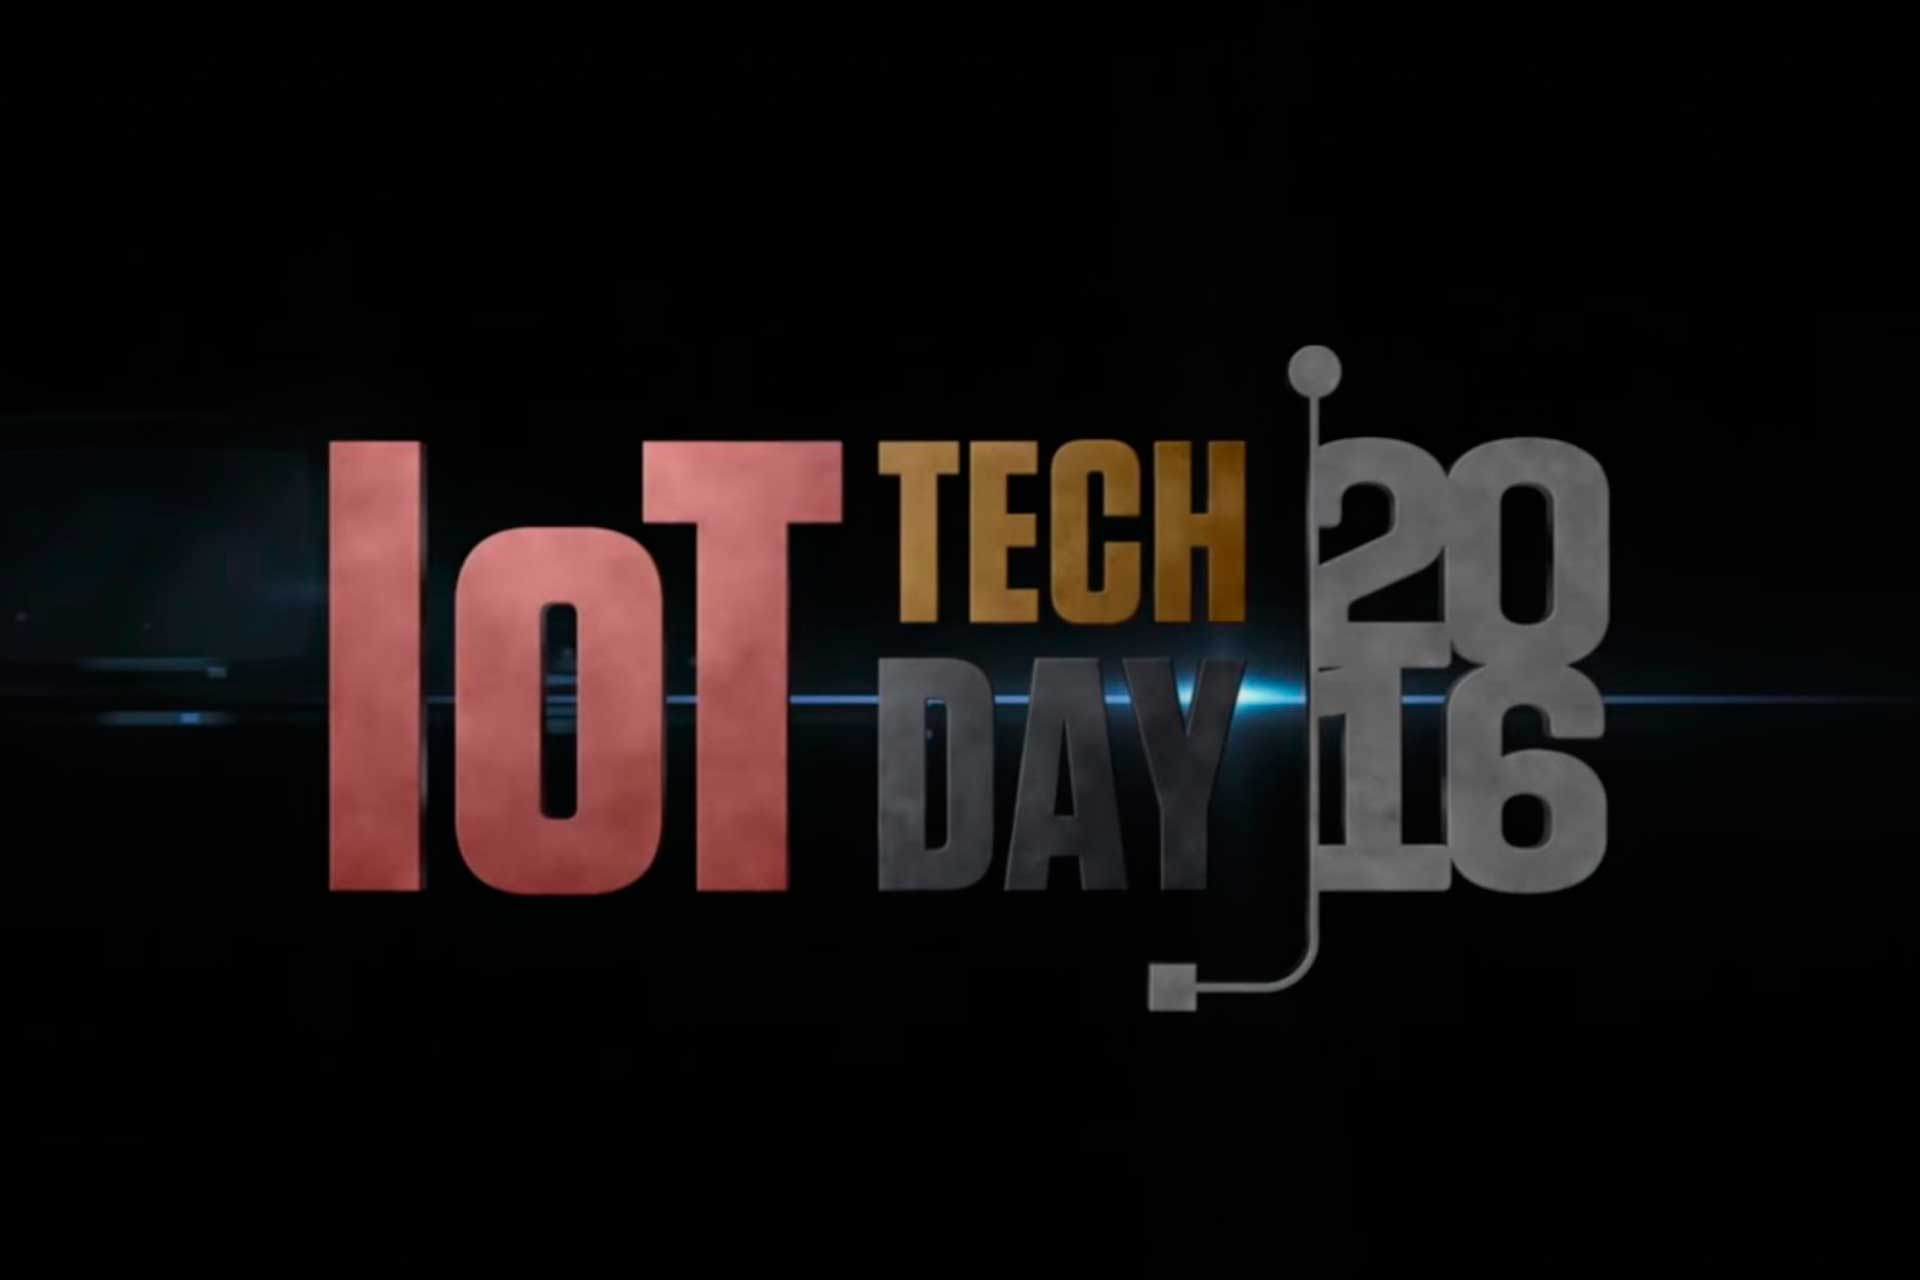 iot-tech-day-2016